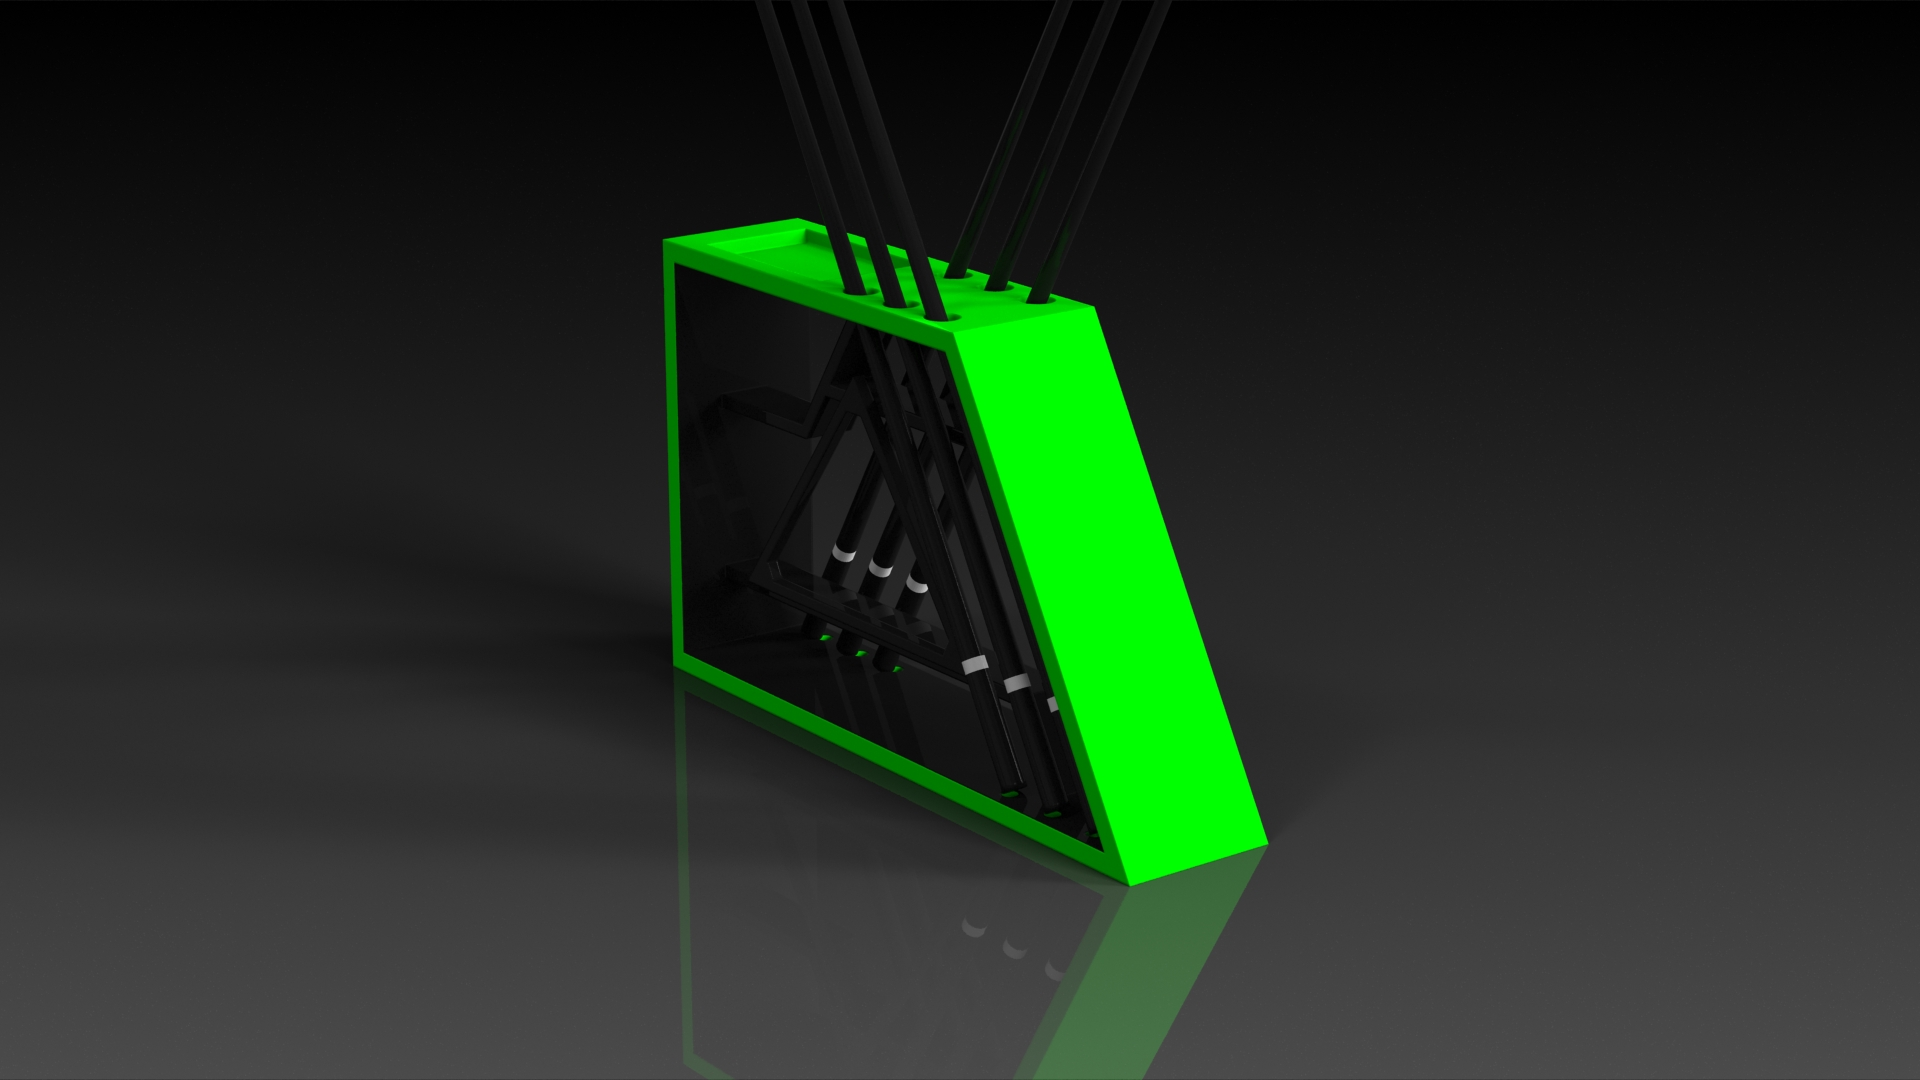 PS3 Neon Green